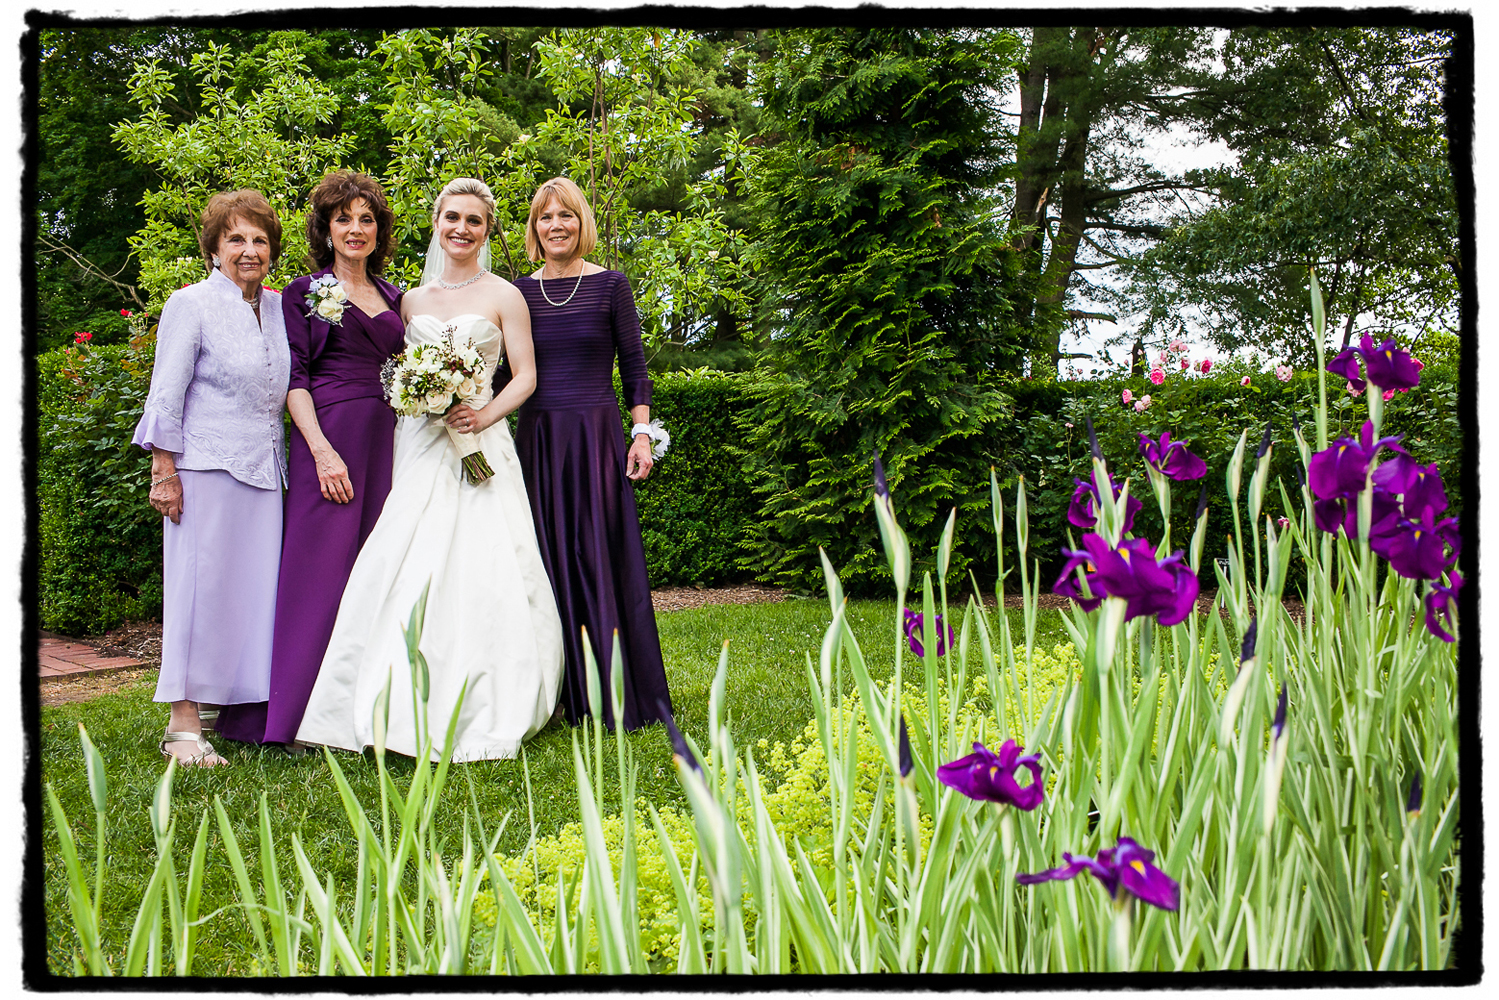 The irises at Frelinghuysen Arboretum were a perfect complement to the dresses worn by this bride's mother, aunt, and grandmother.